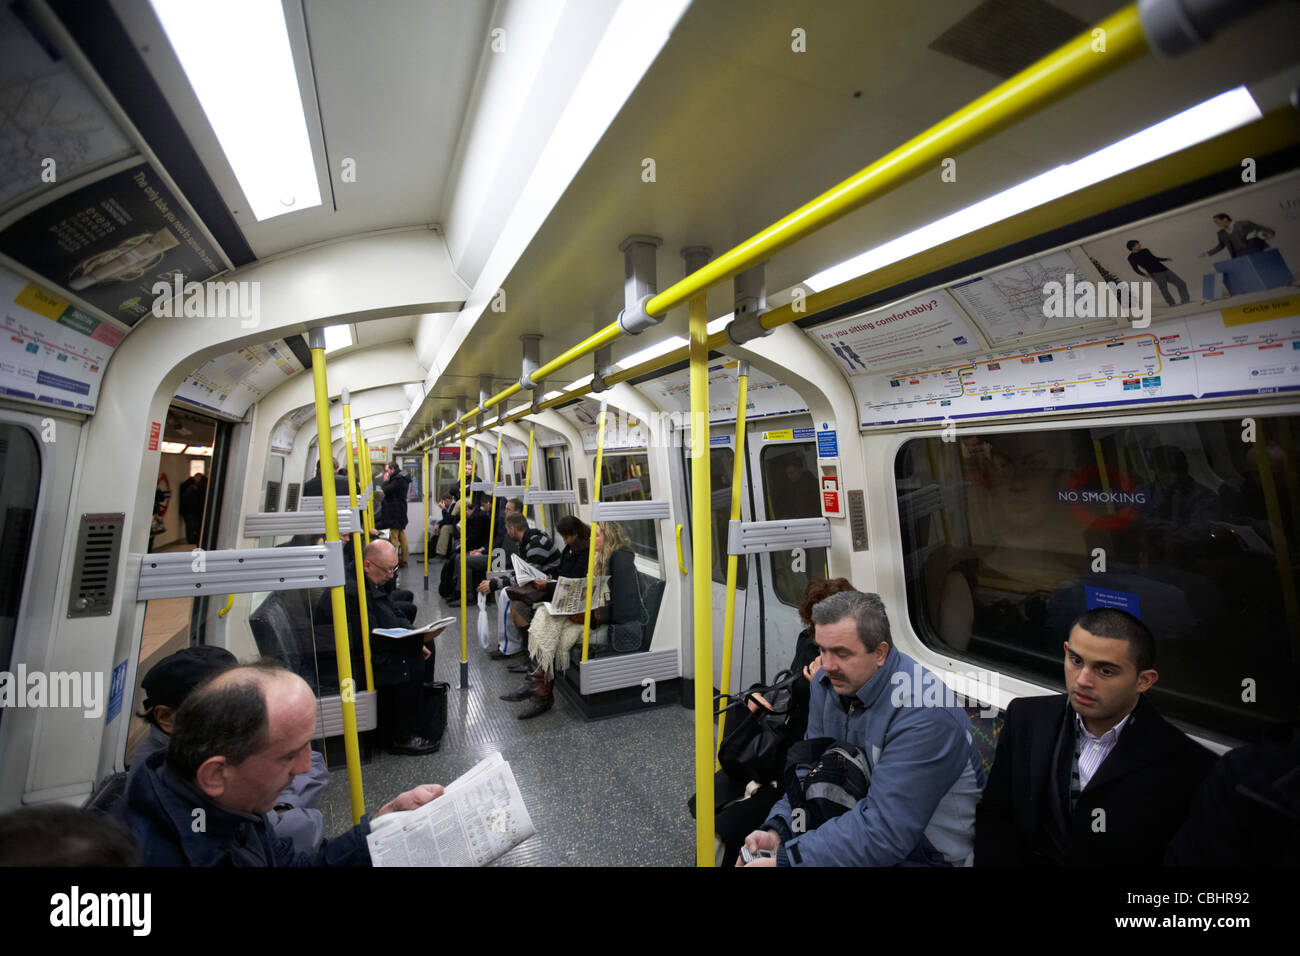 modern new london underground train carriage england united kingdom uk - Stock Image